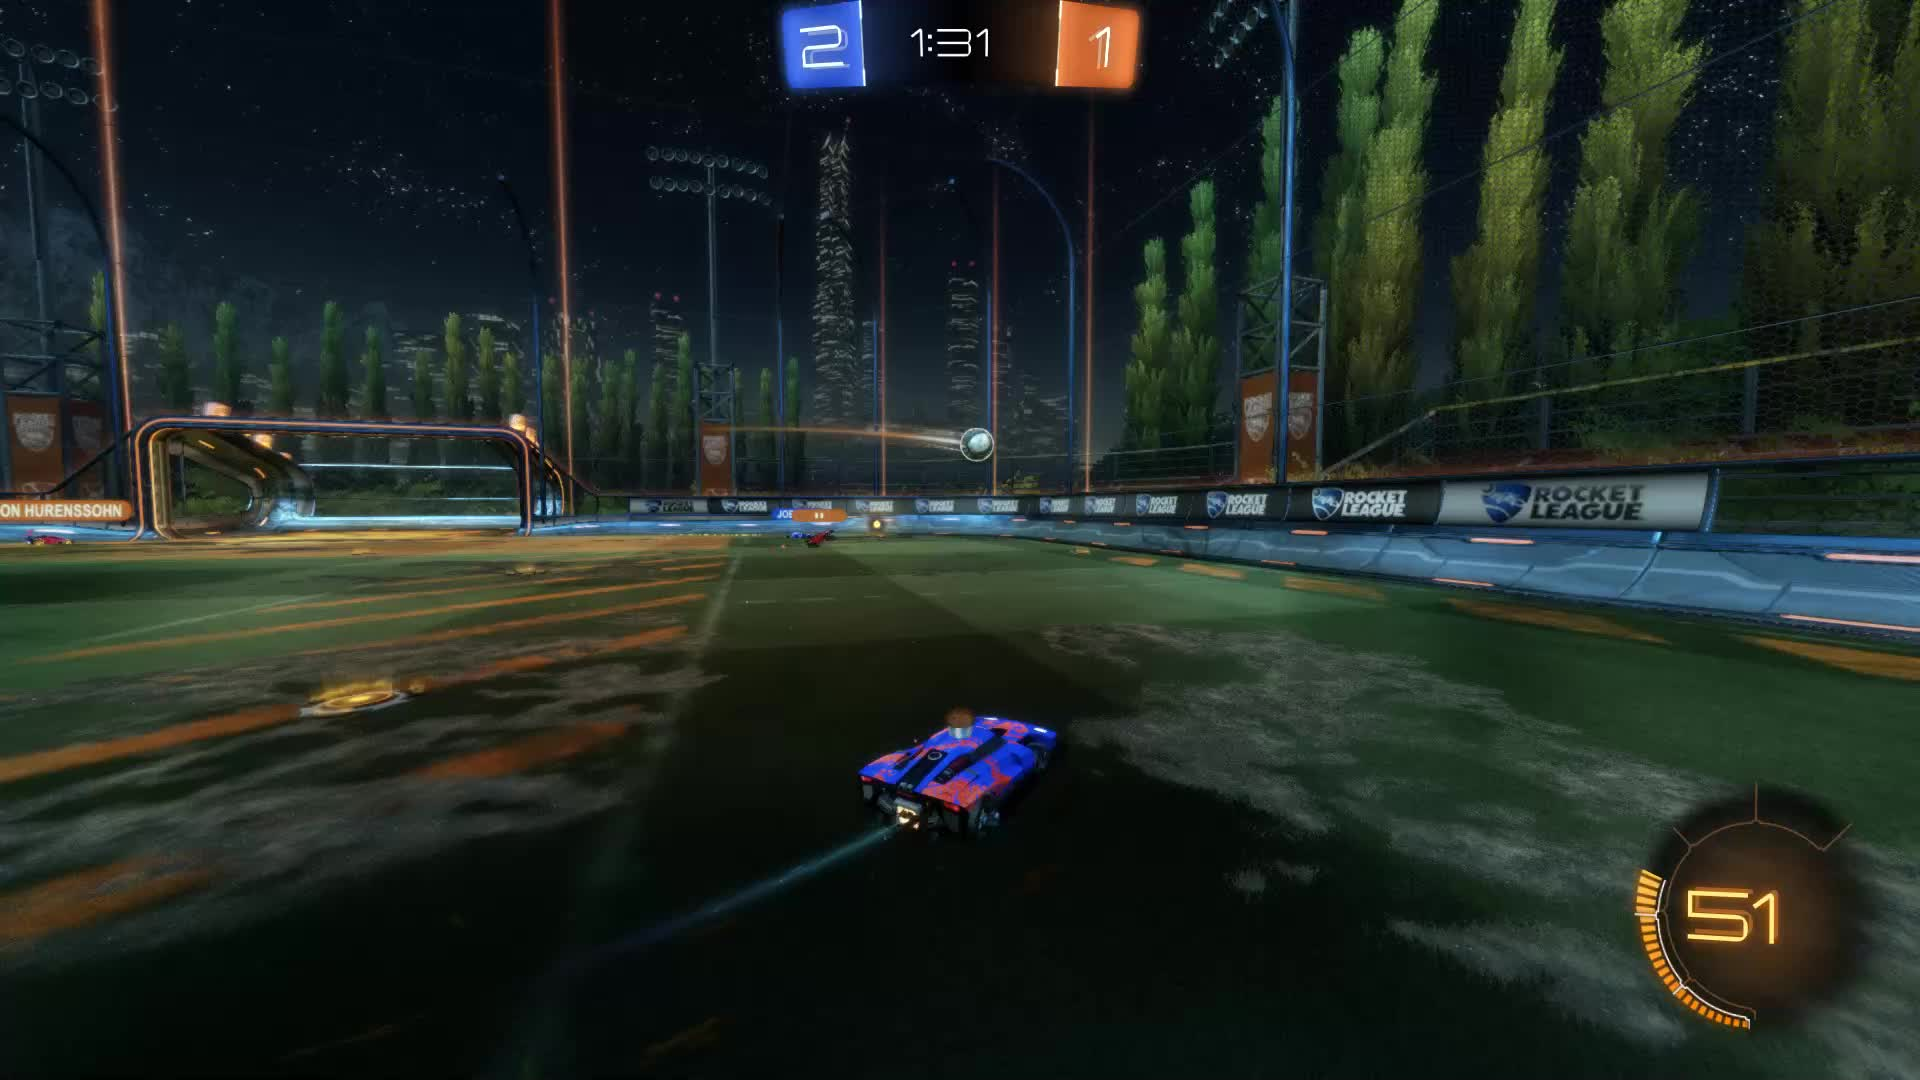 Gif Your Game, GifYourGame, Qrr, Rocket League, RocketLeague, Goal 4: joep (nl) GIFs